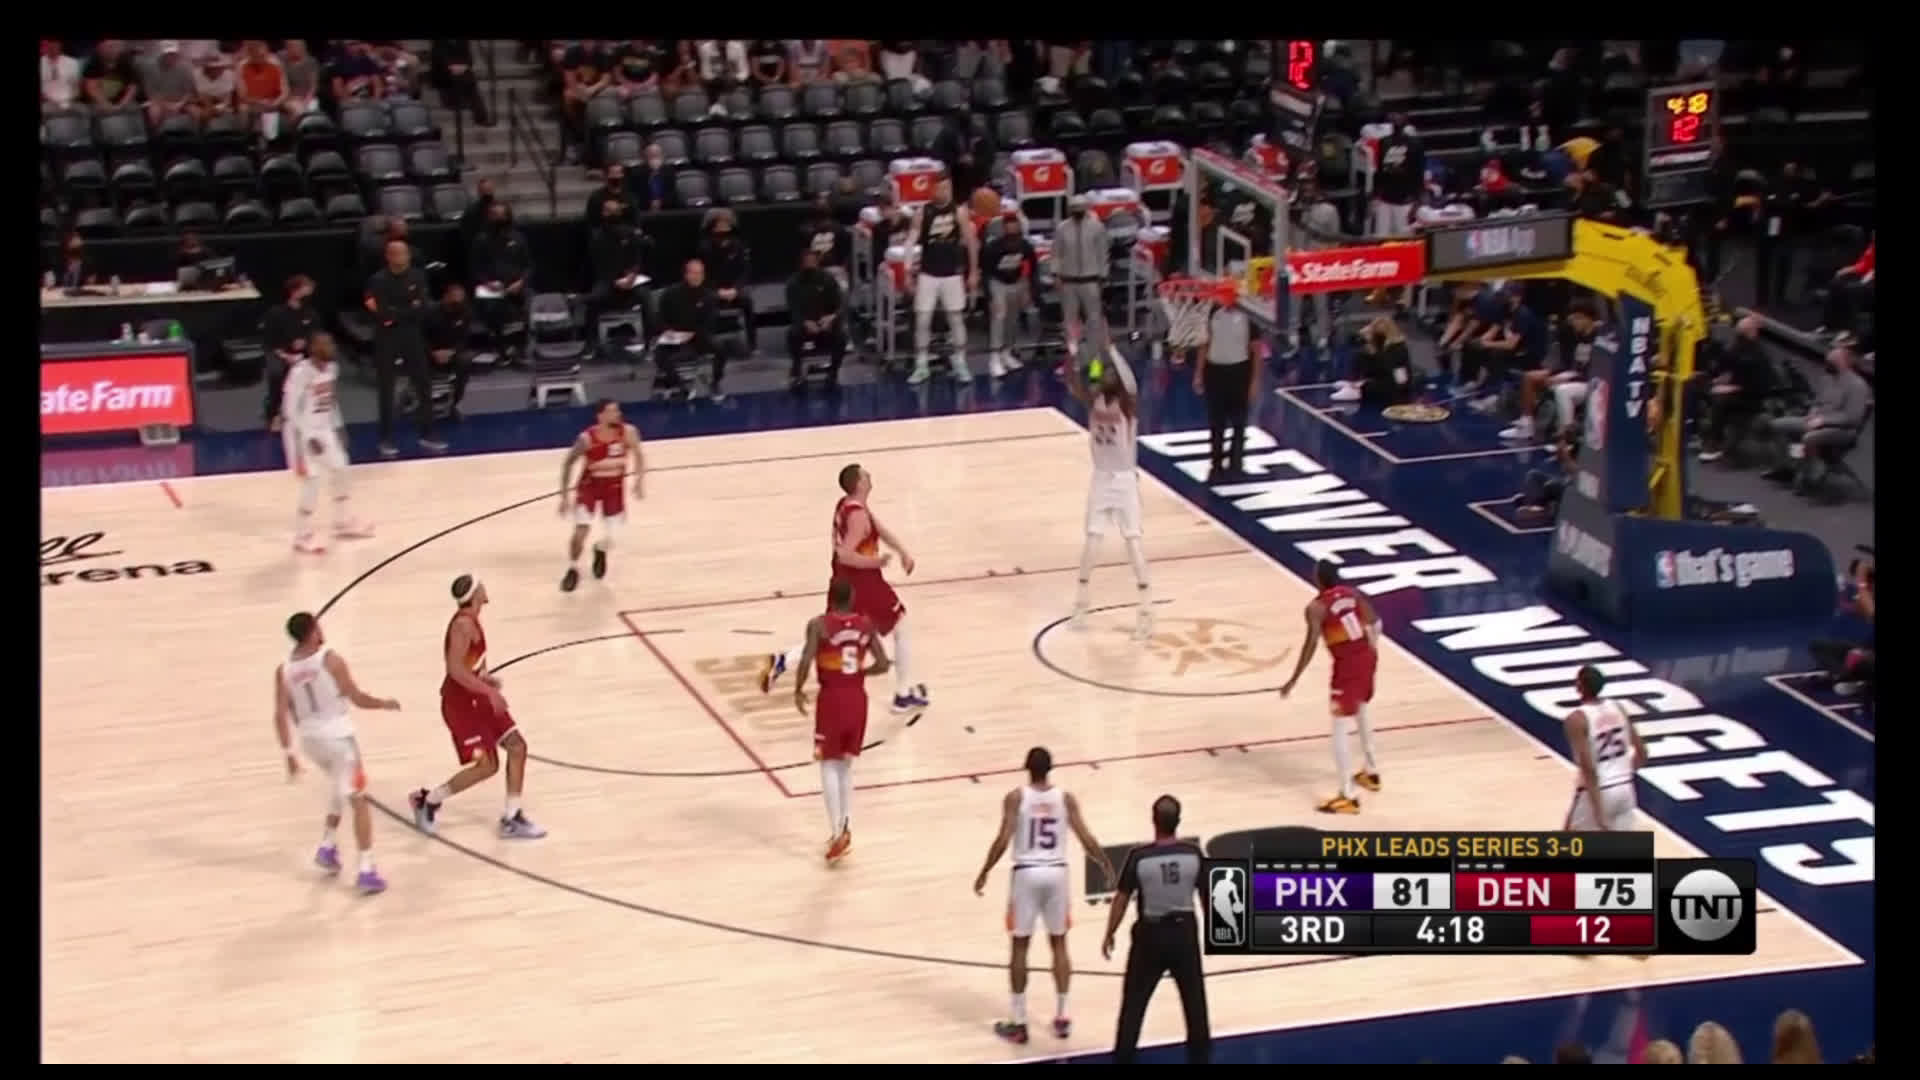 [Highlight] Booker with the smooth lob to Ayton who finishes the job